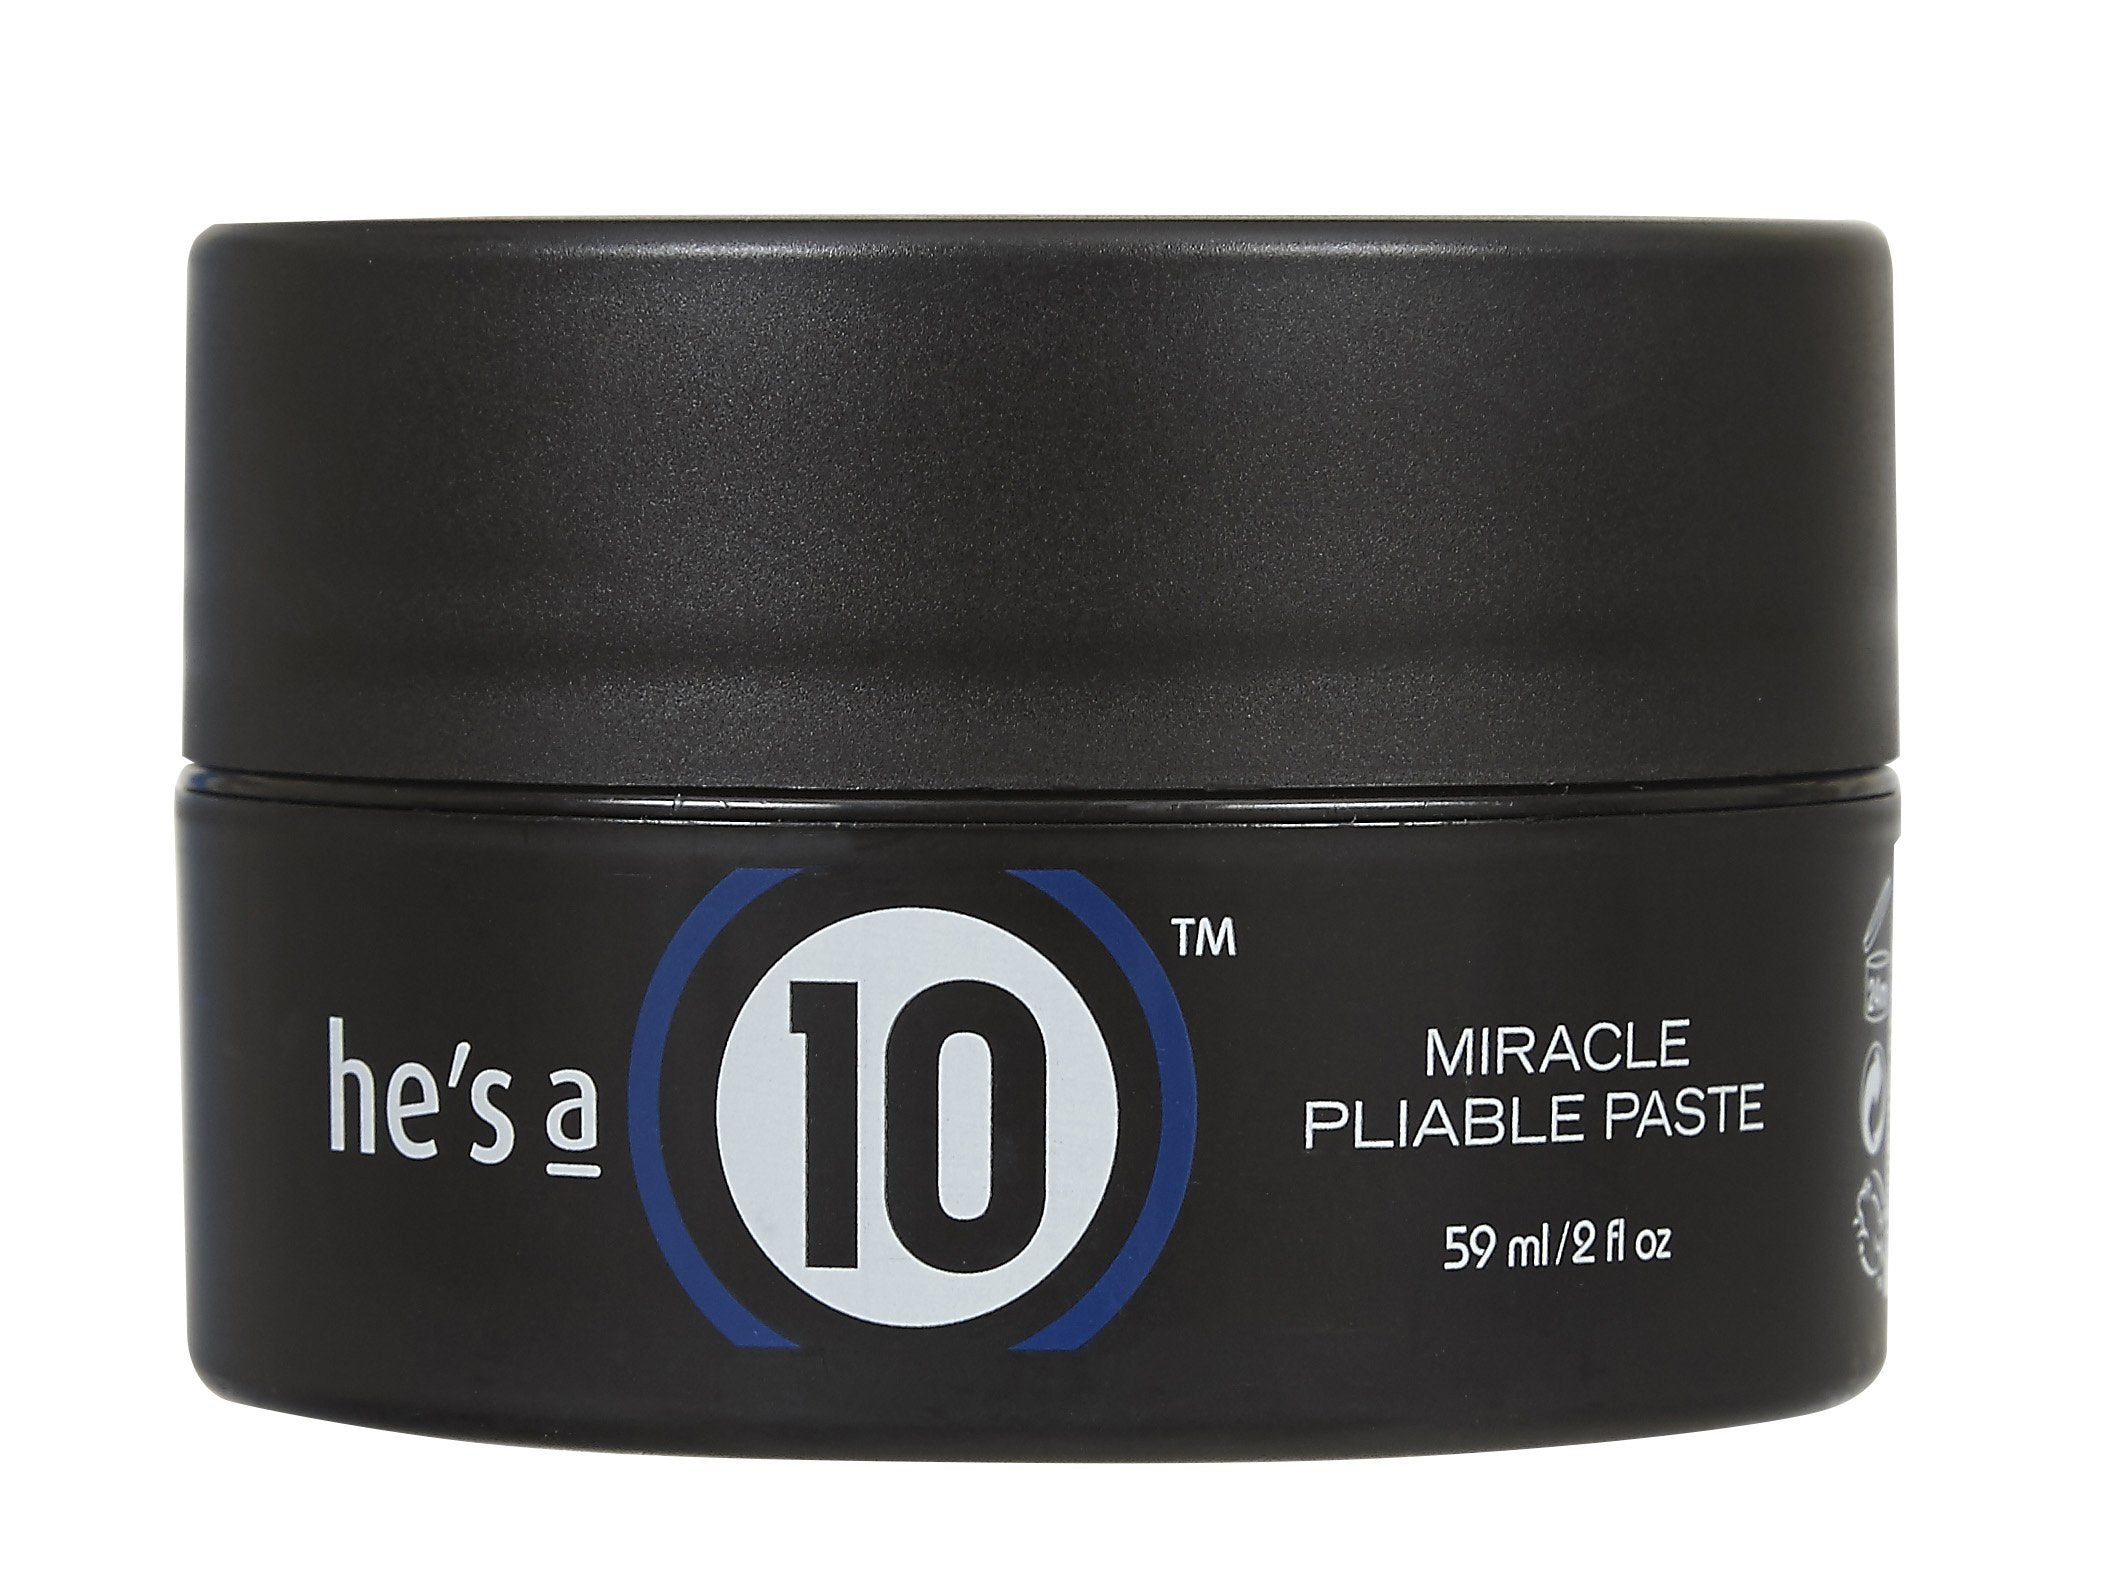 He's a 10 Miracle Pliable Styling Paste